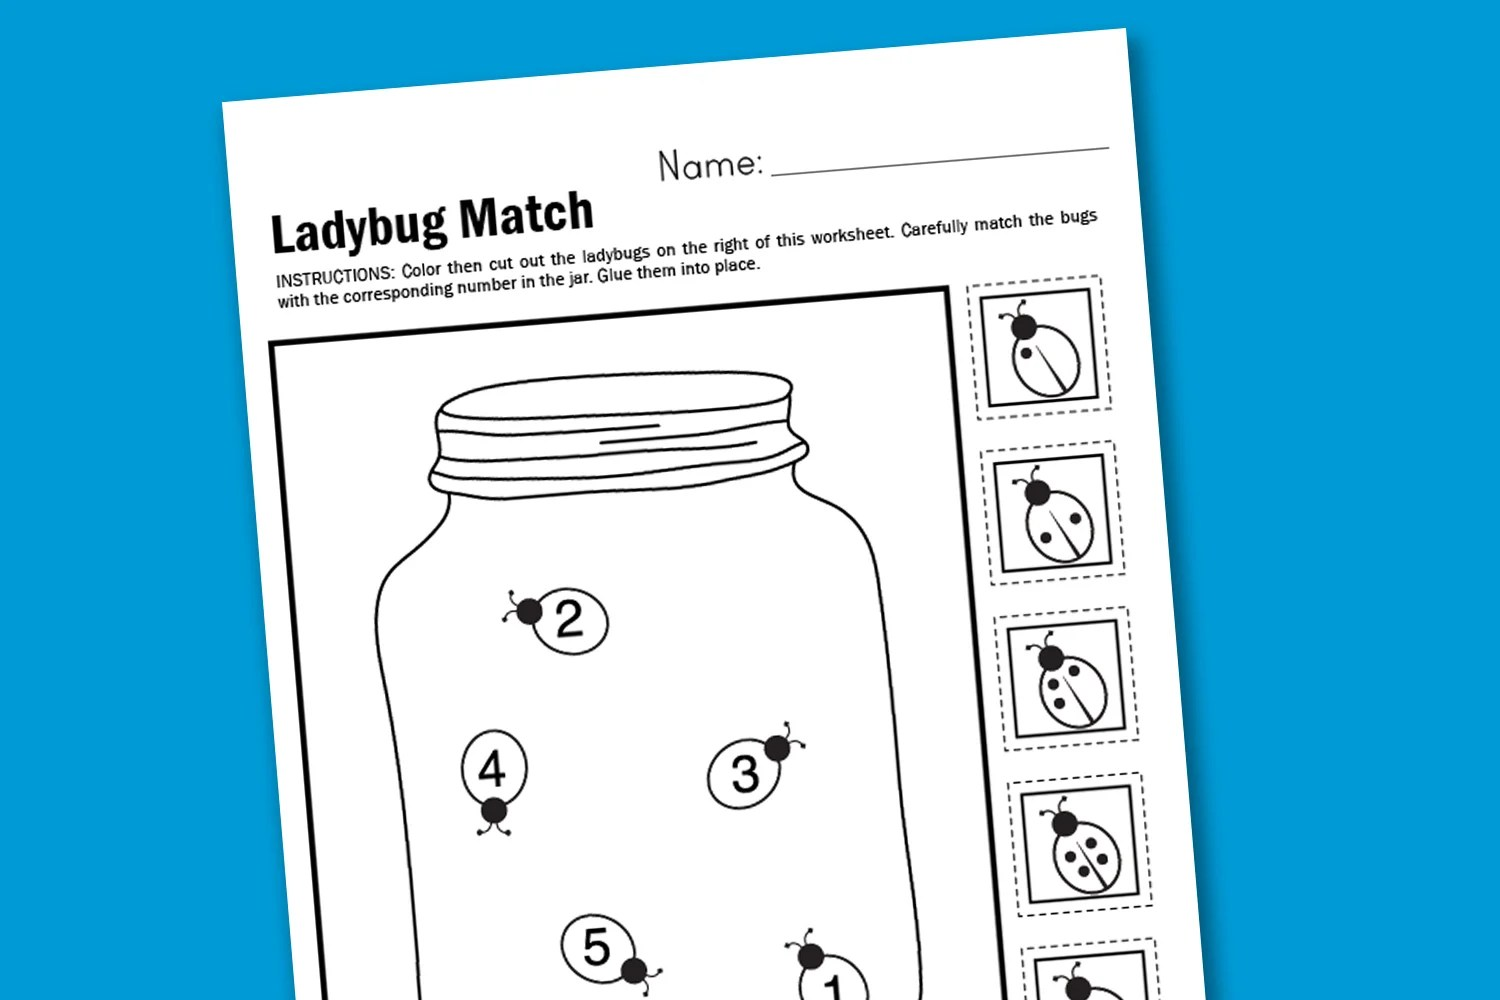 Worksheet Wednesday Ladybug Matching